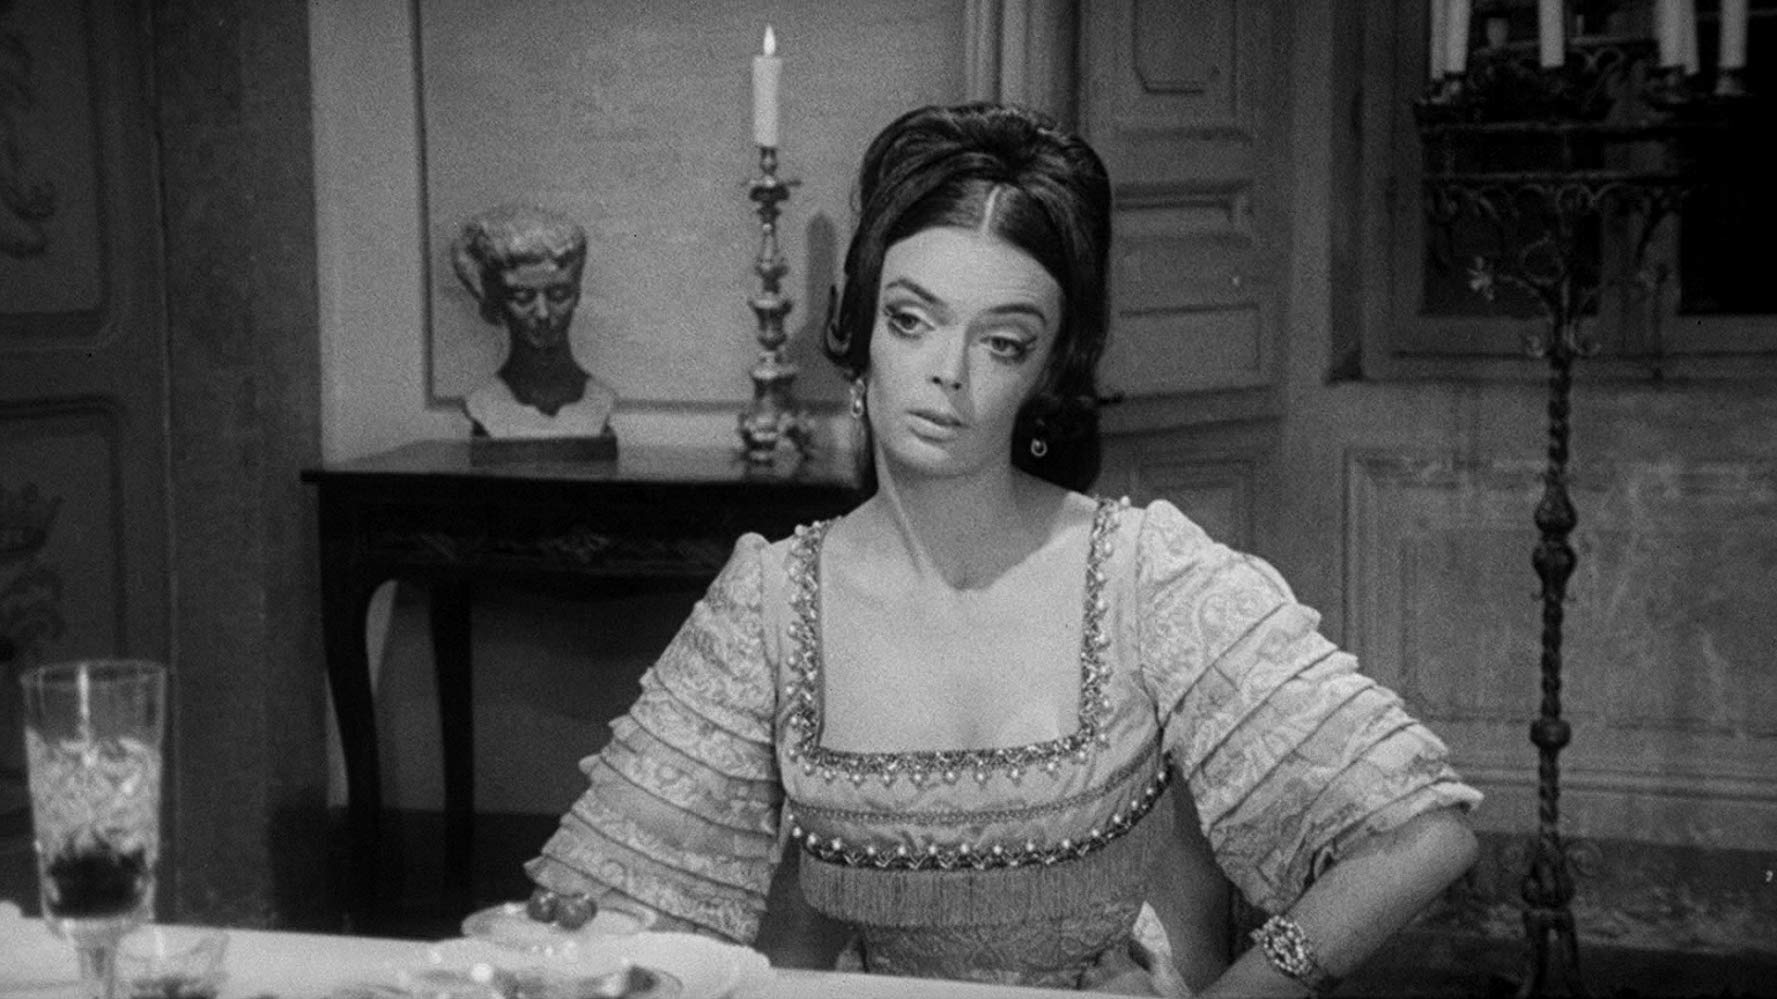 Barbara Steele in Terror-Creatures from the Grave (1965)